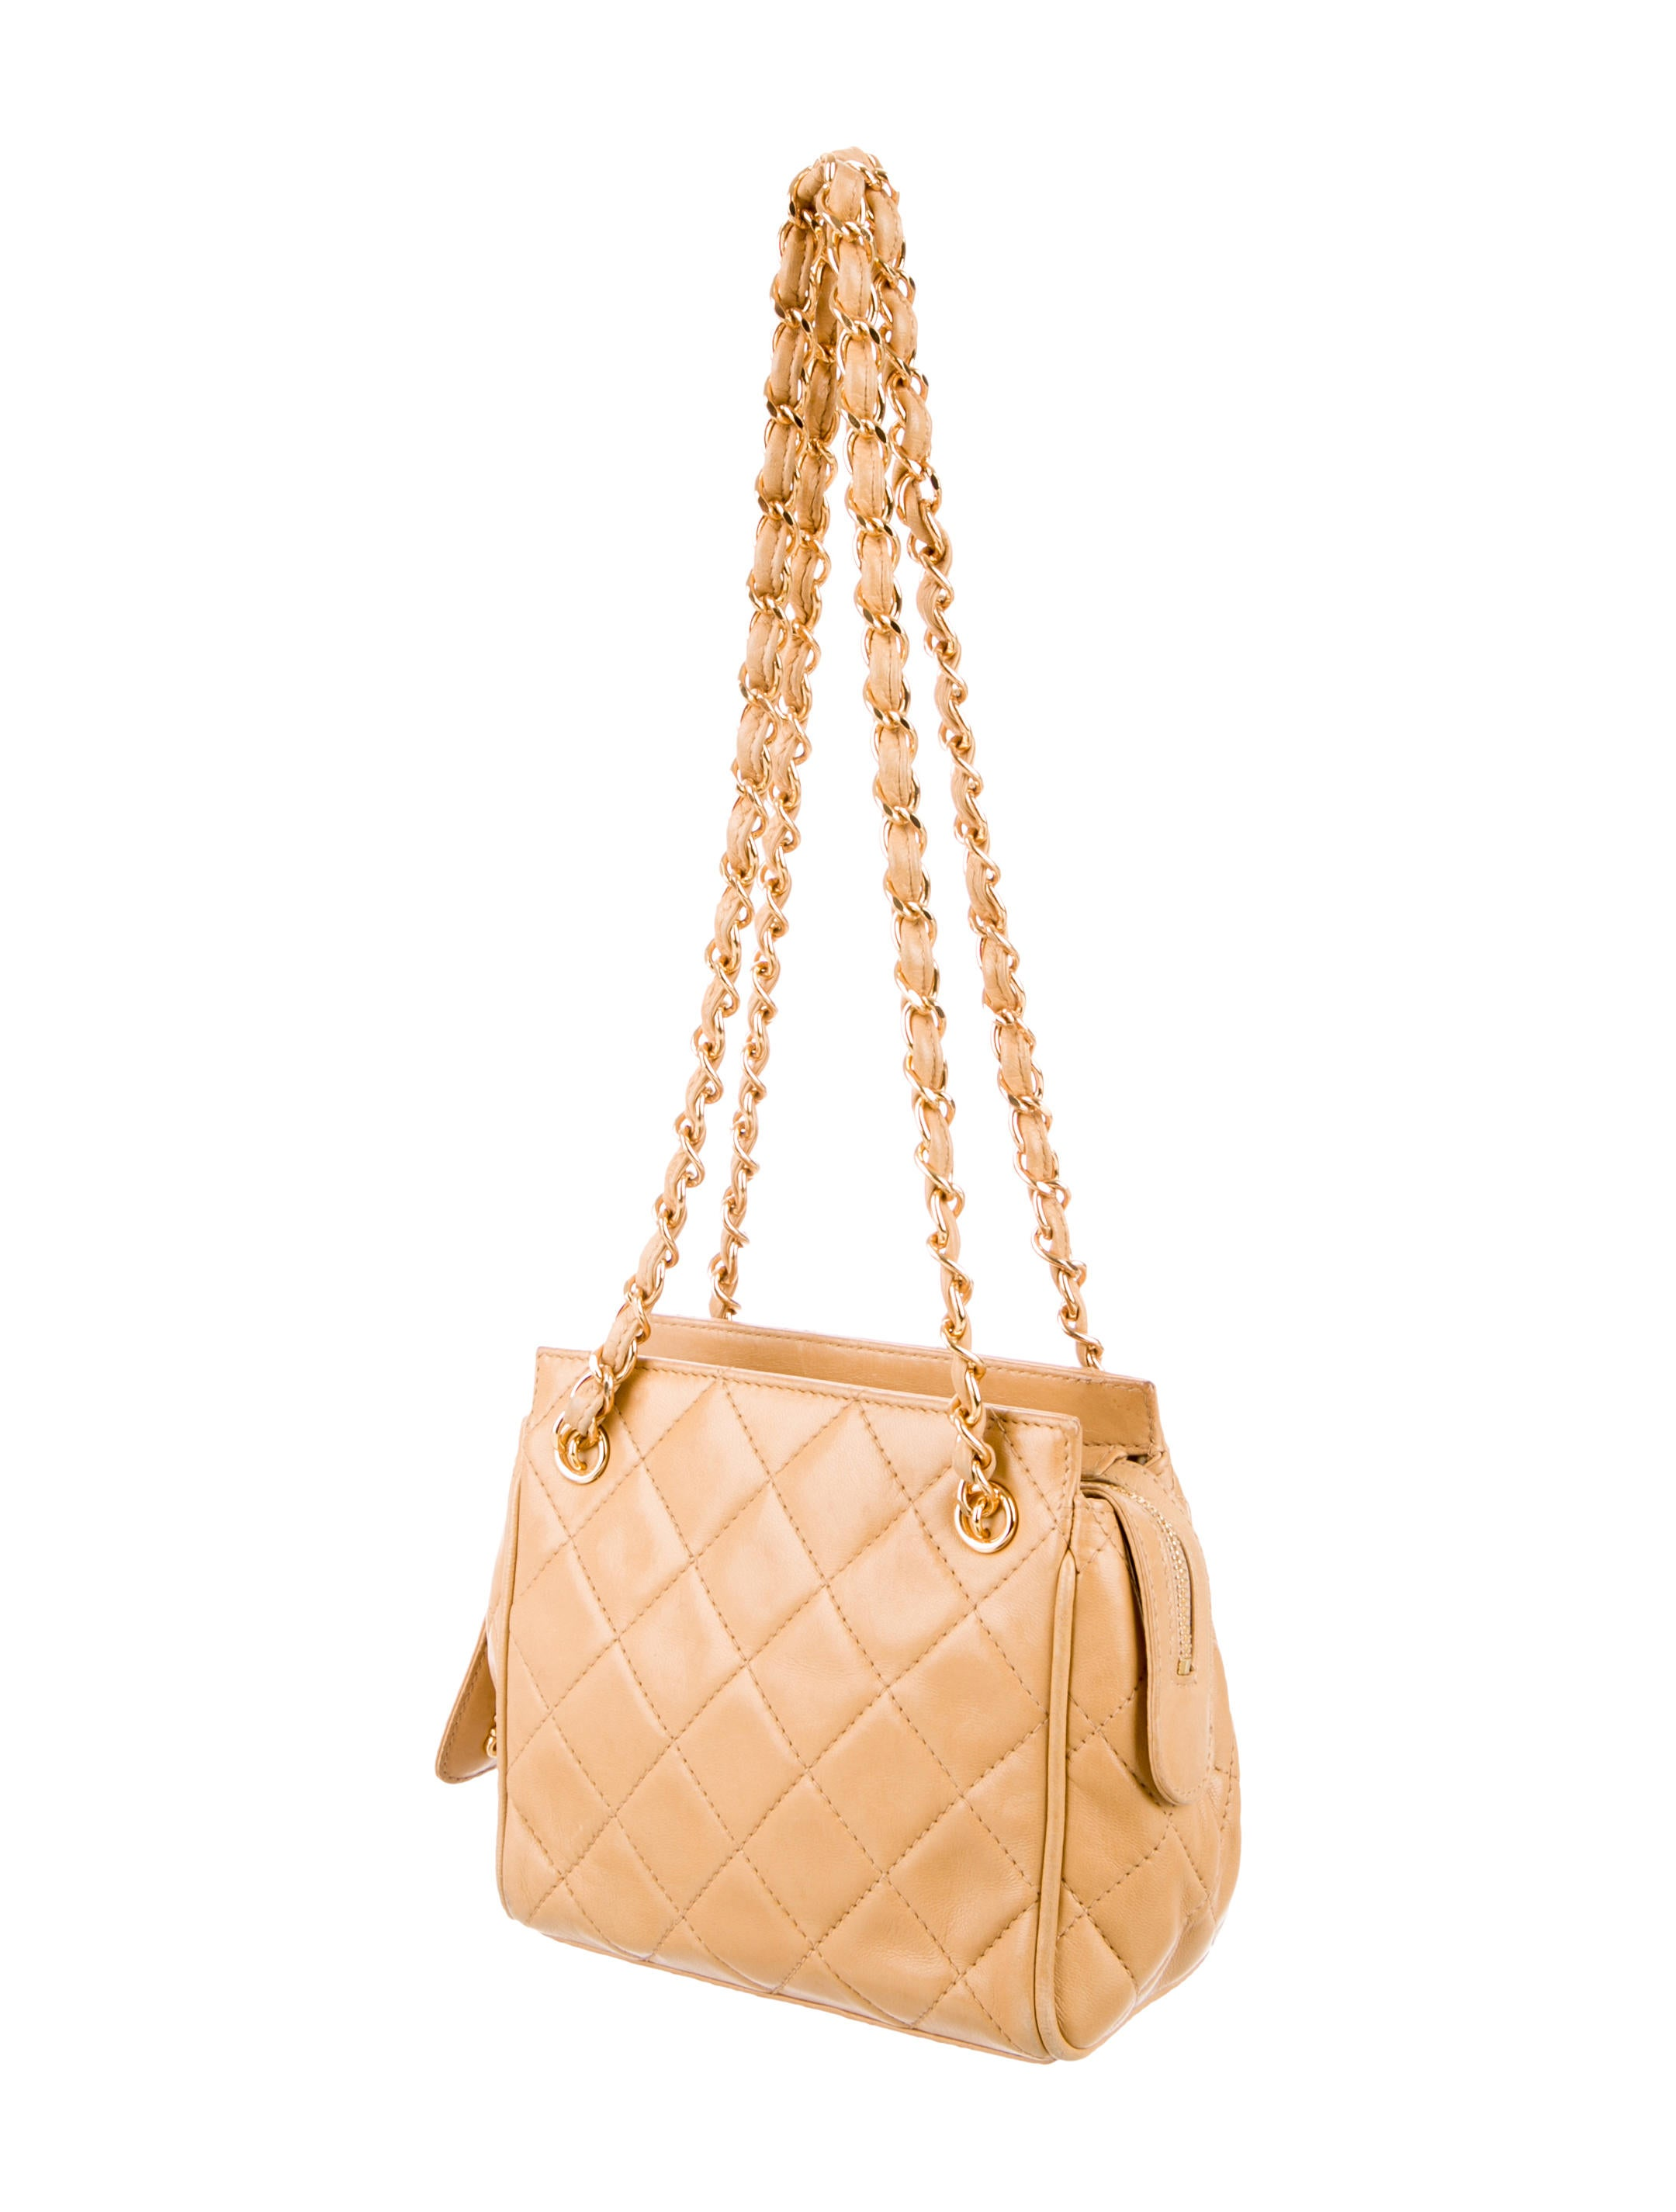 Chanel Vintage Quilted Lambskin Shoulder Bag Handbags  : CHA1024393enlarged from www.therealreal.com size 2160 x 2850 jpeg 225kB